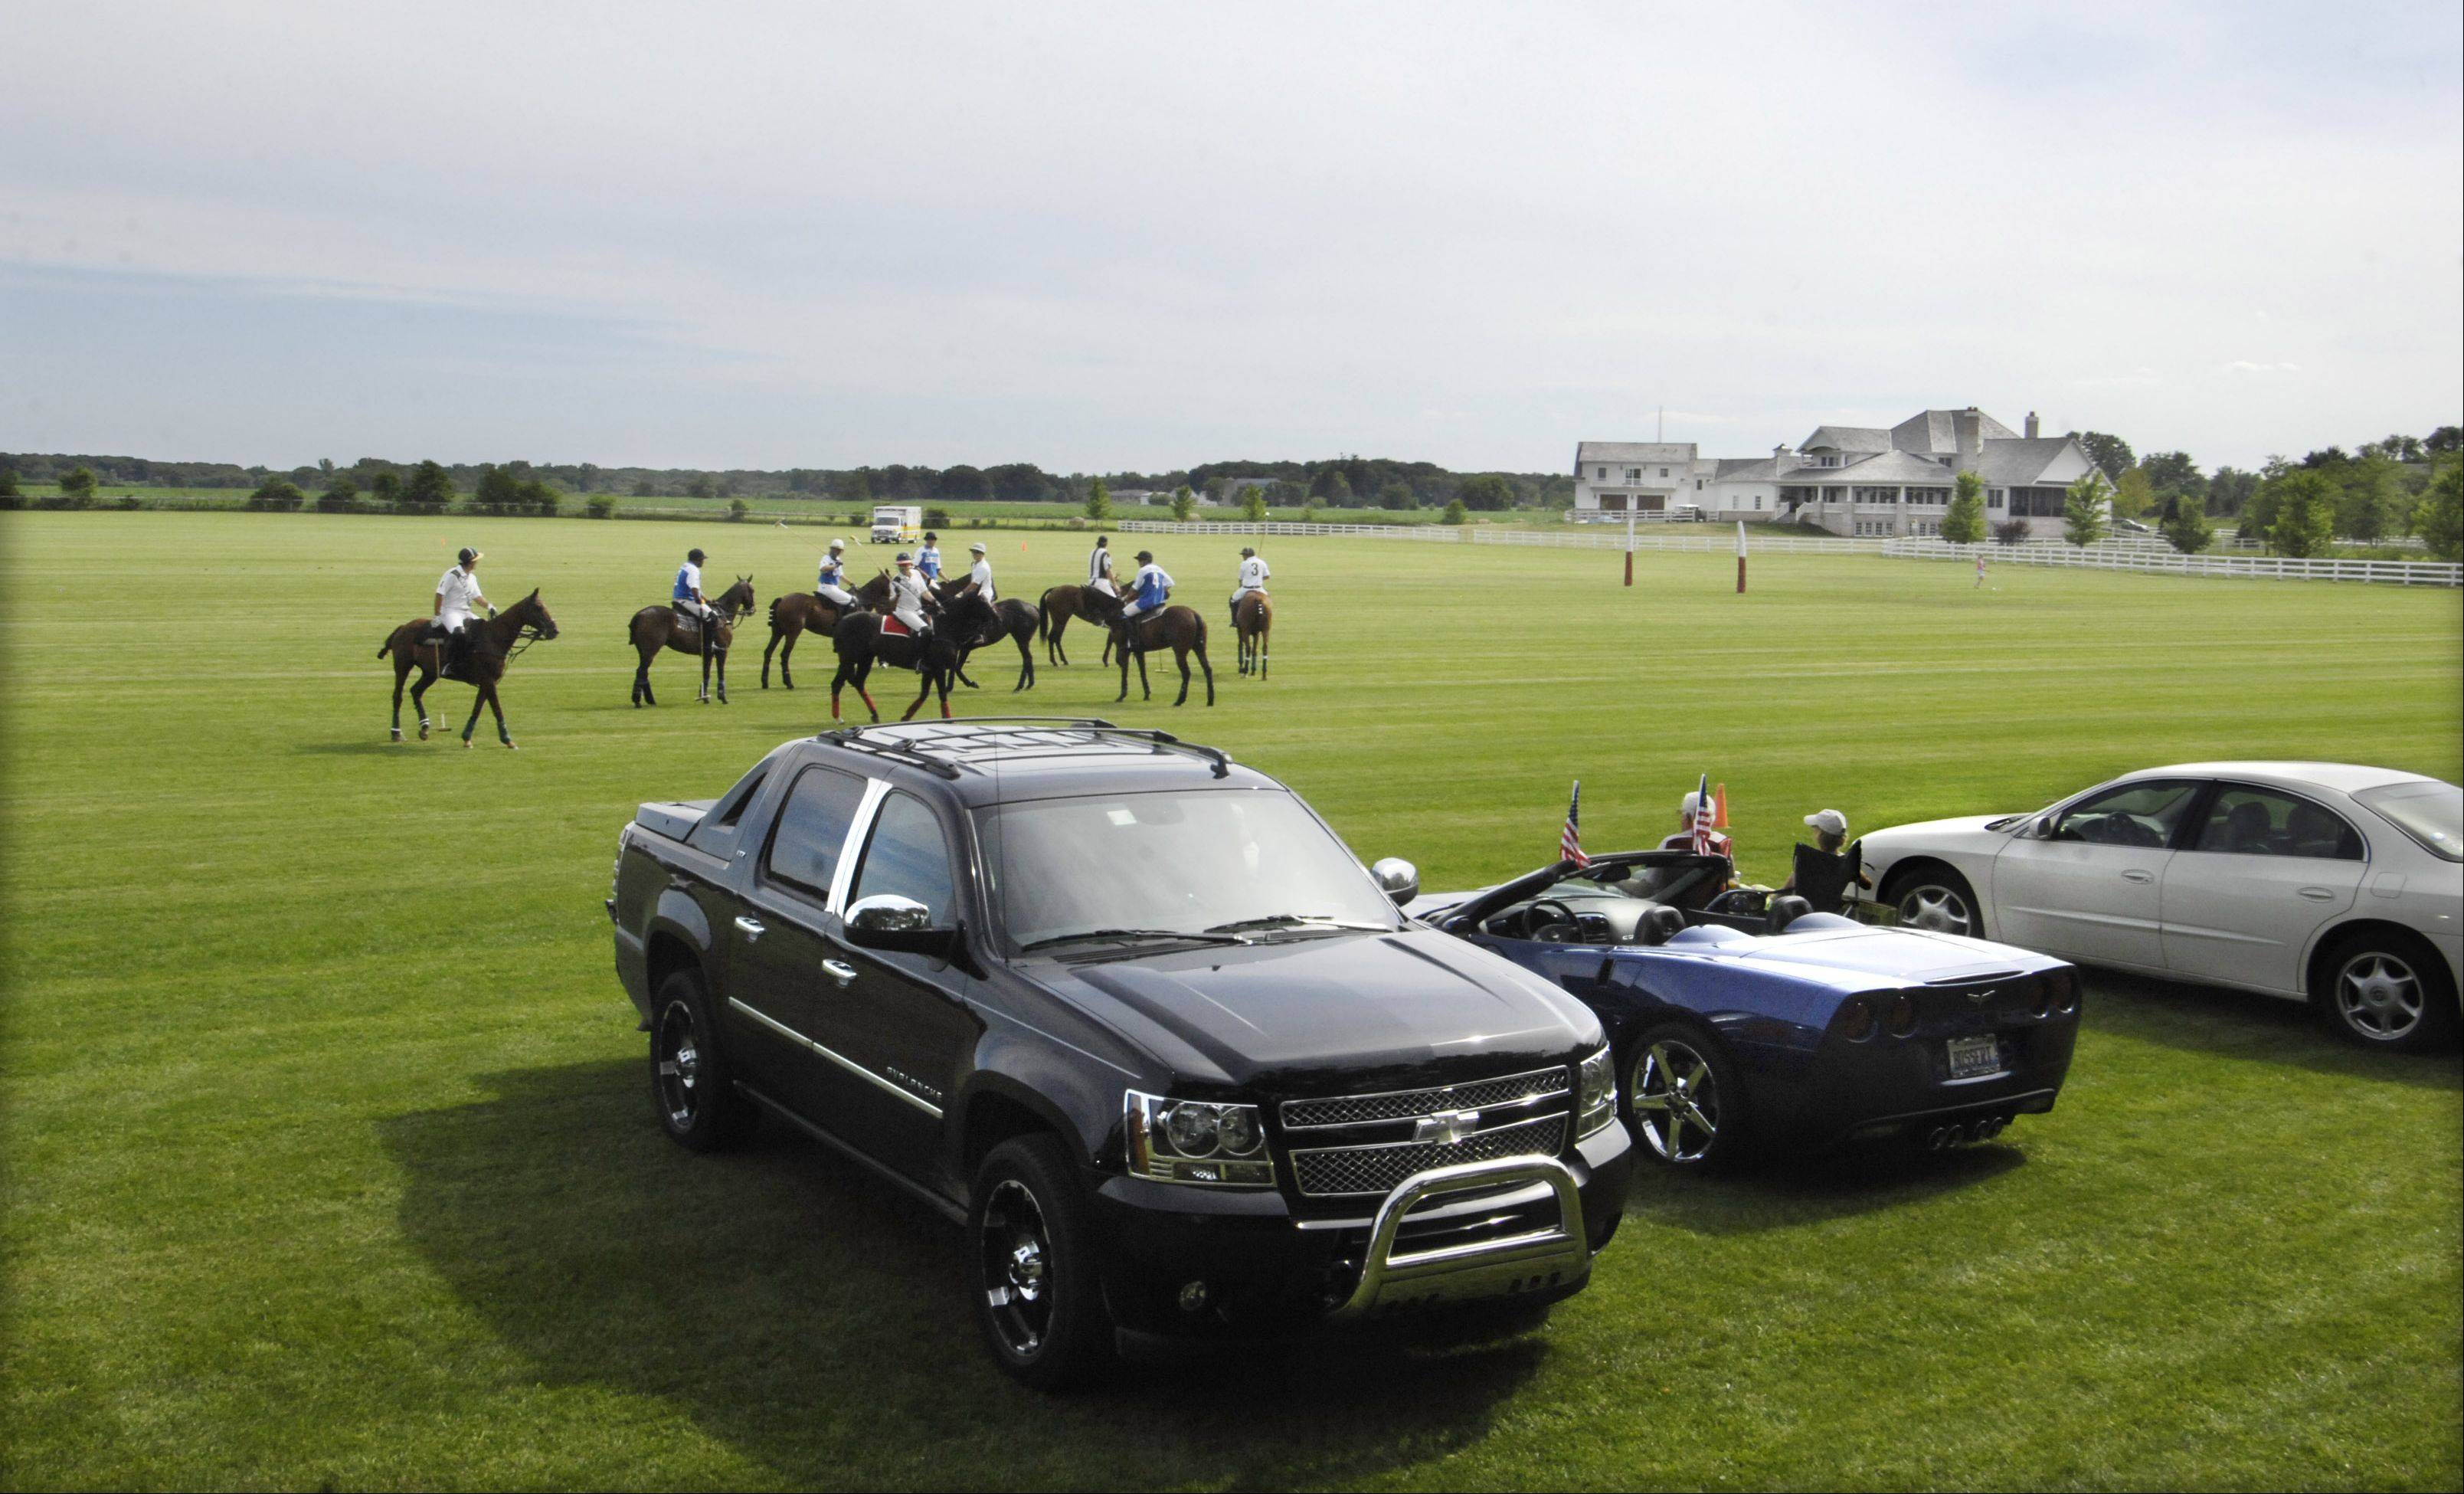 Players and their mounts gather for a restart near the sidelines where the ball went out of bounds Sunday during the finals of the Freemont Cup at the Dahlwood Polo Farm, west of Elgin.